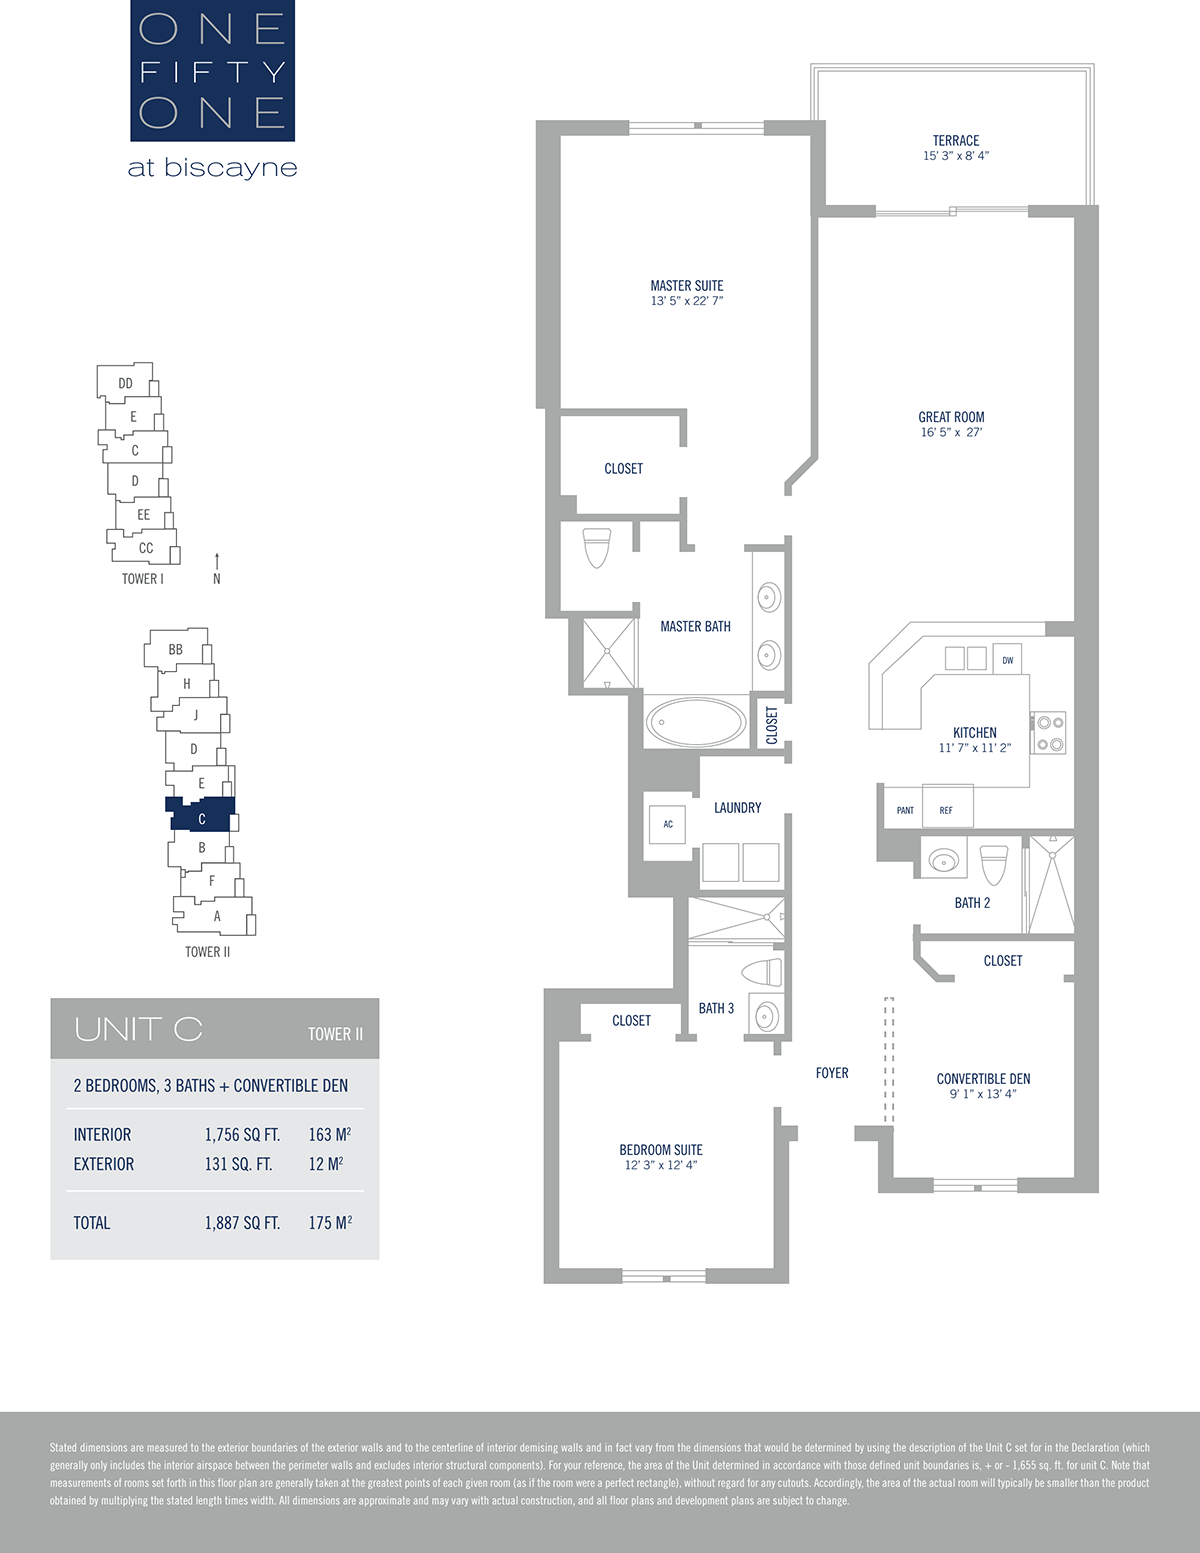 One Fifty One At Biscayne - Floorplan 3